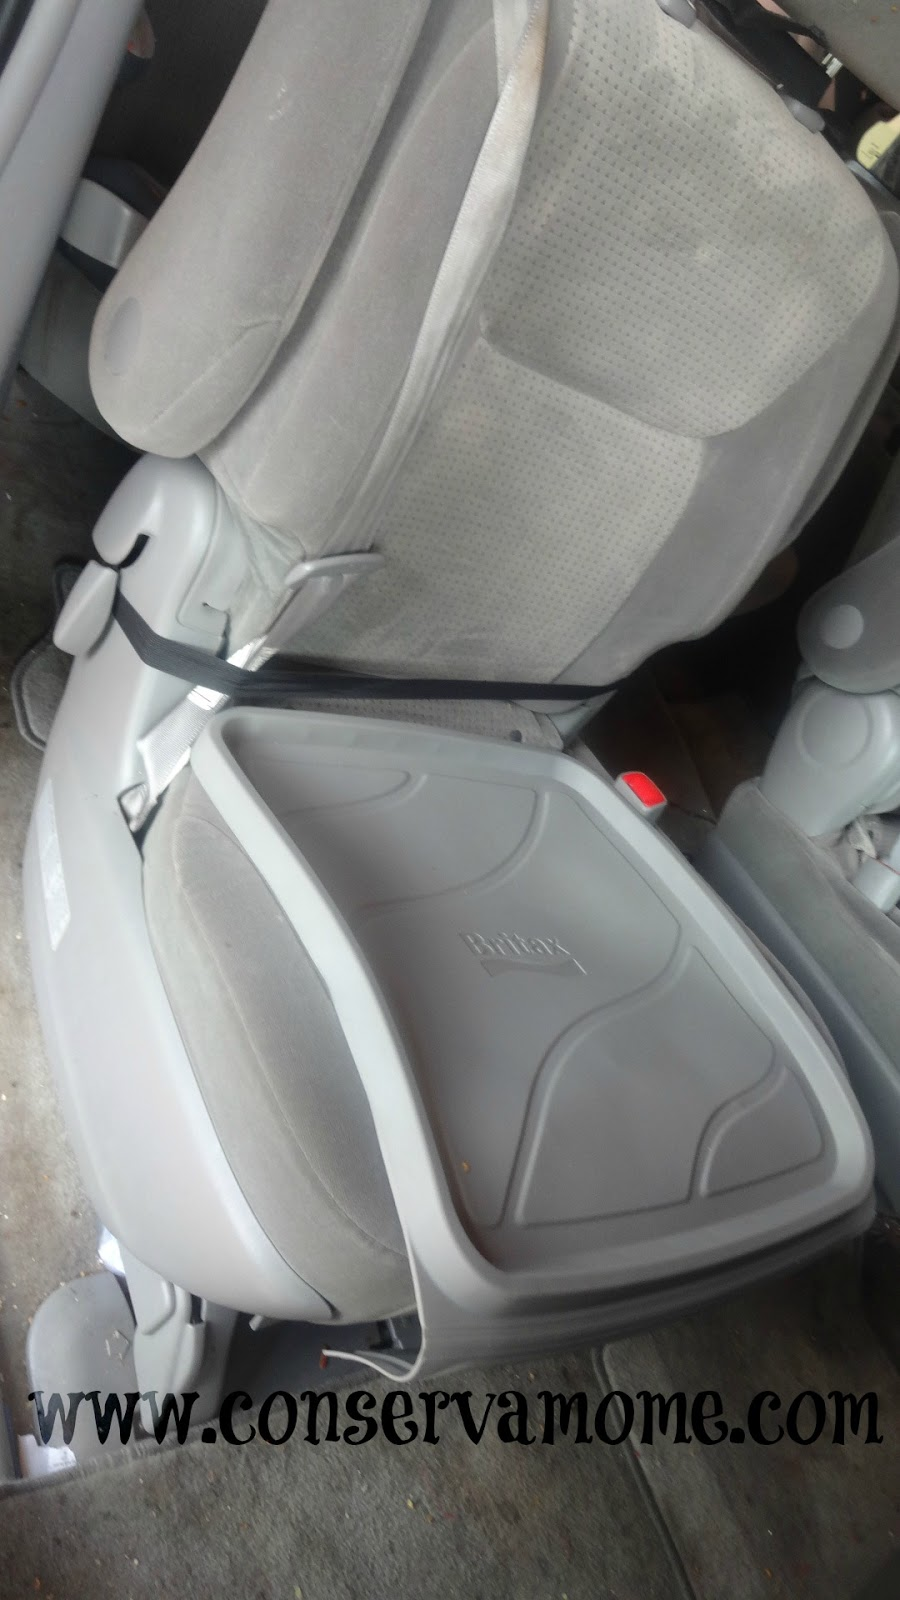 Britax car accessory 3-pack Review - ConservaMom